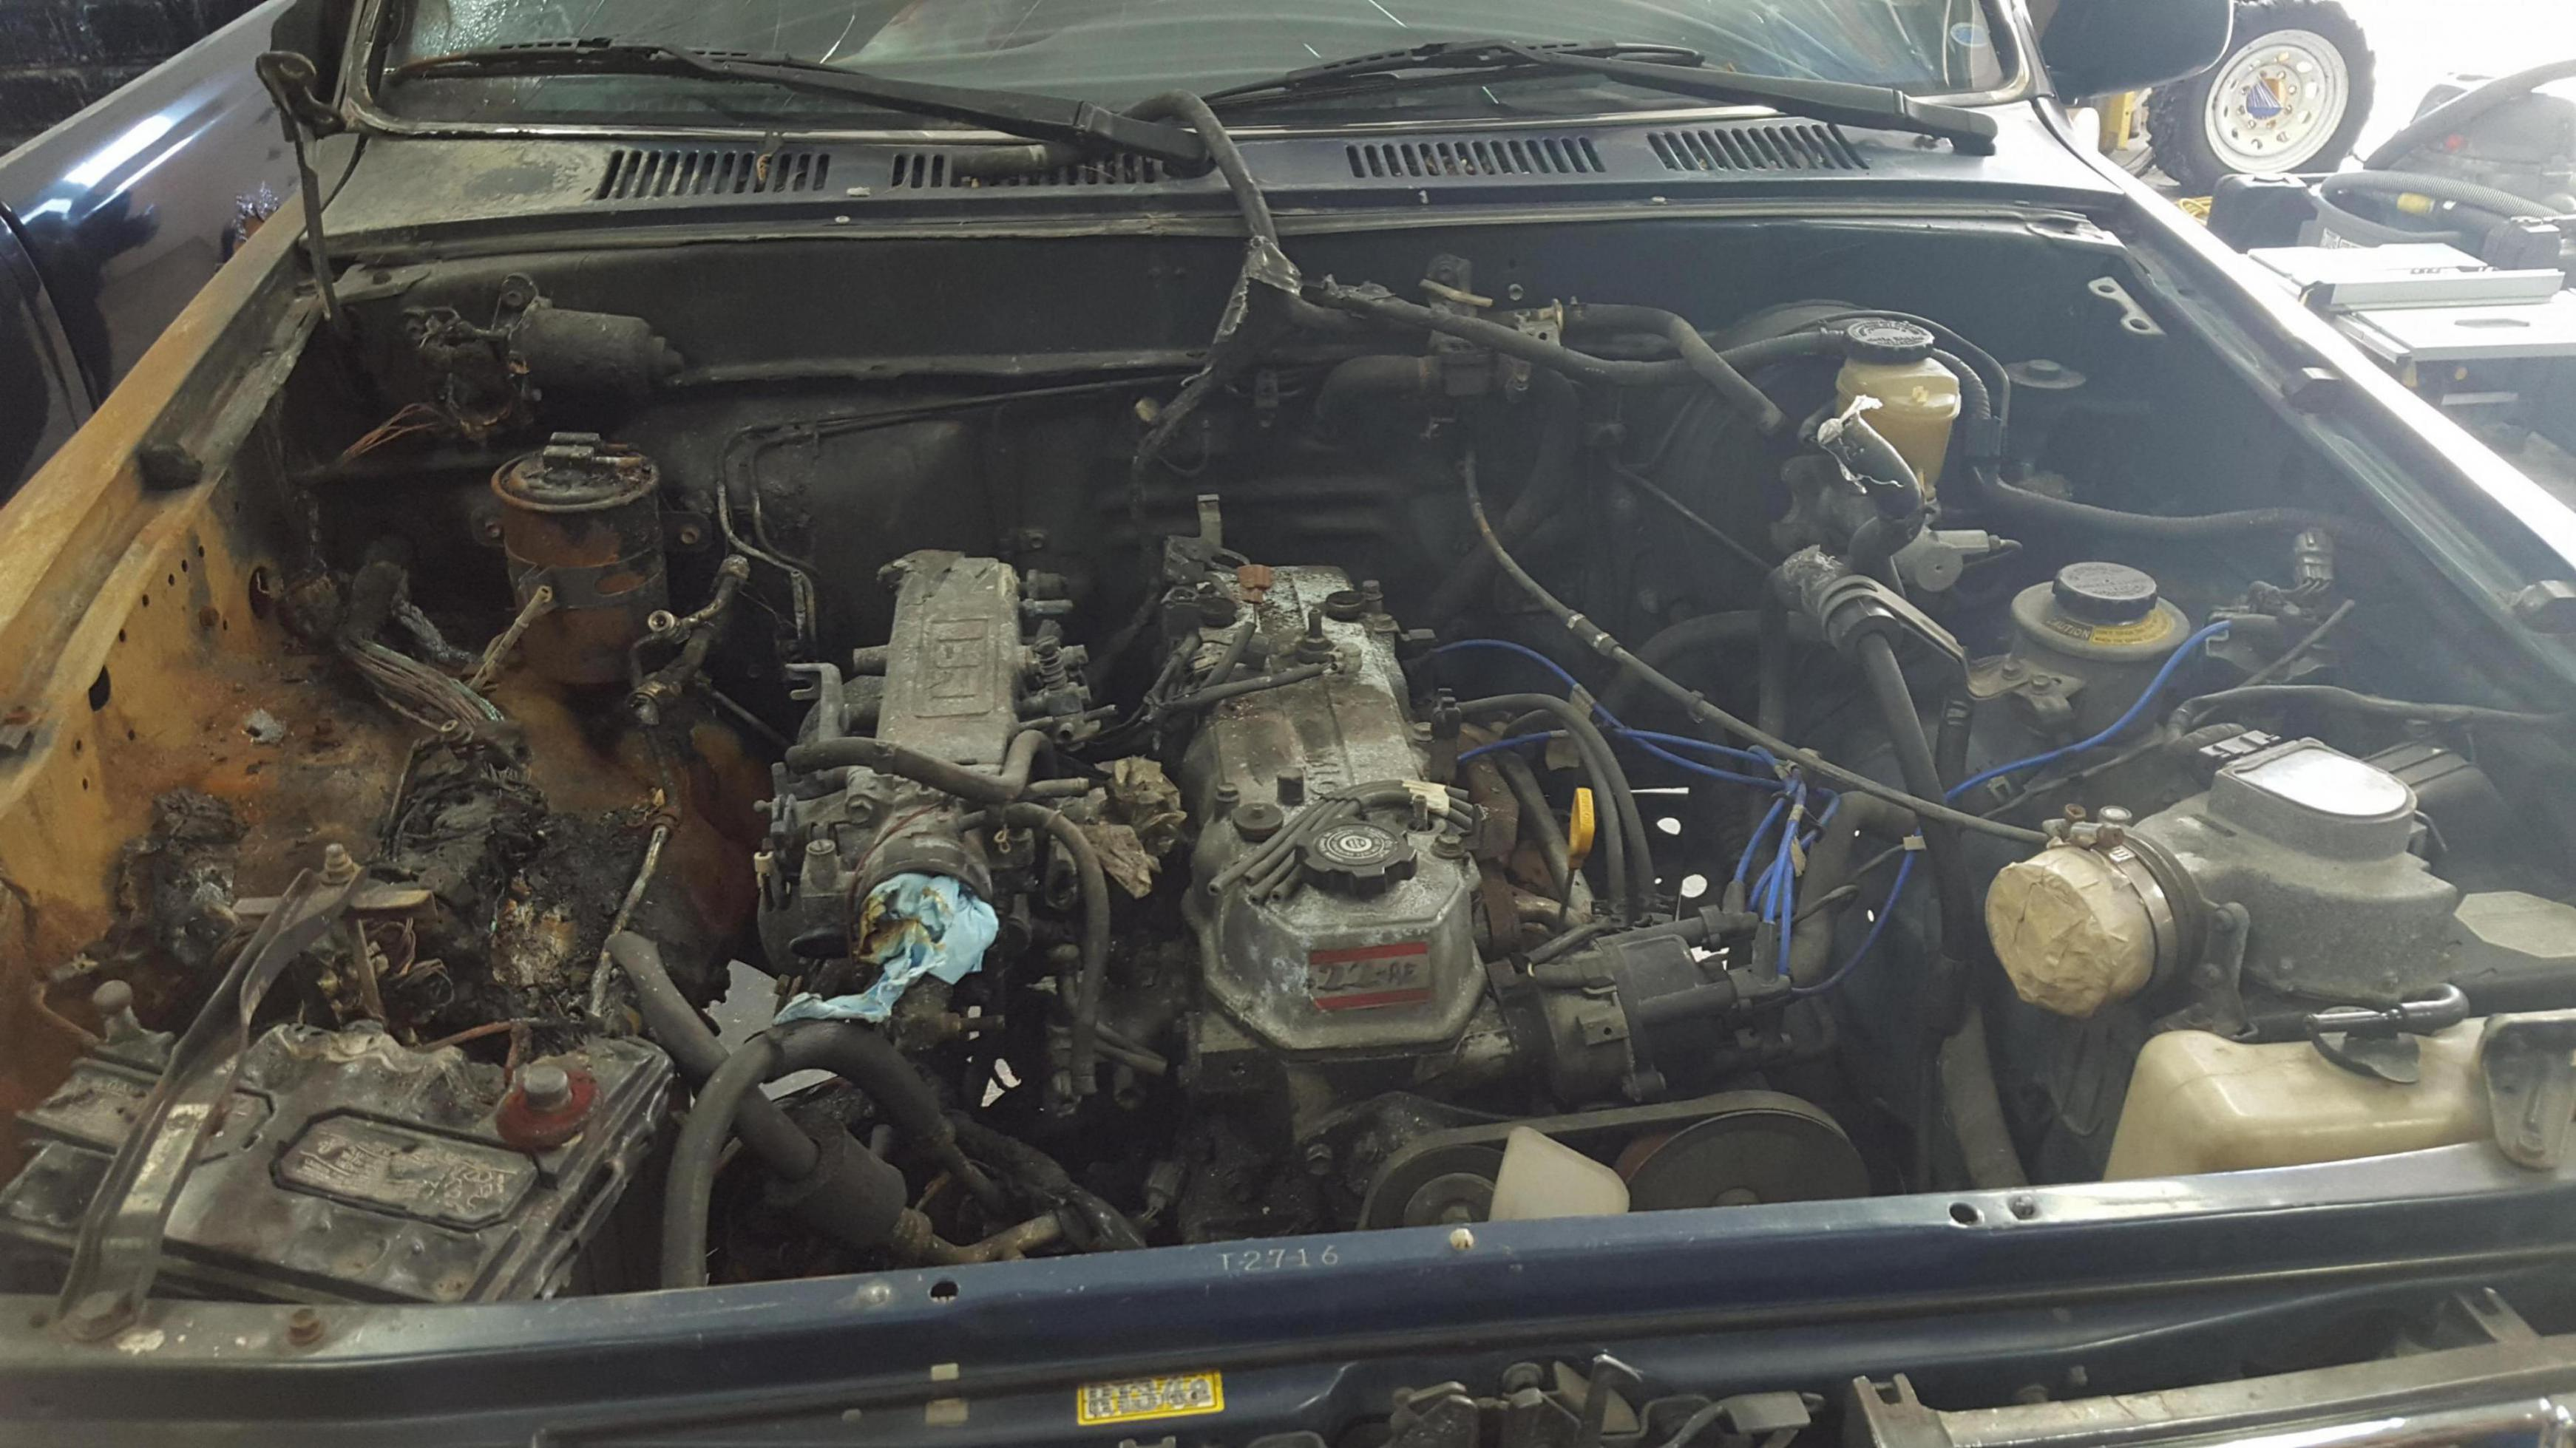 Wiring harness/ 22RE compatibility - Toyota Nation Forum : Toyota Car and  Truck Forums